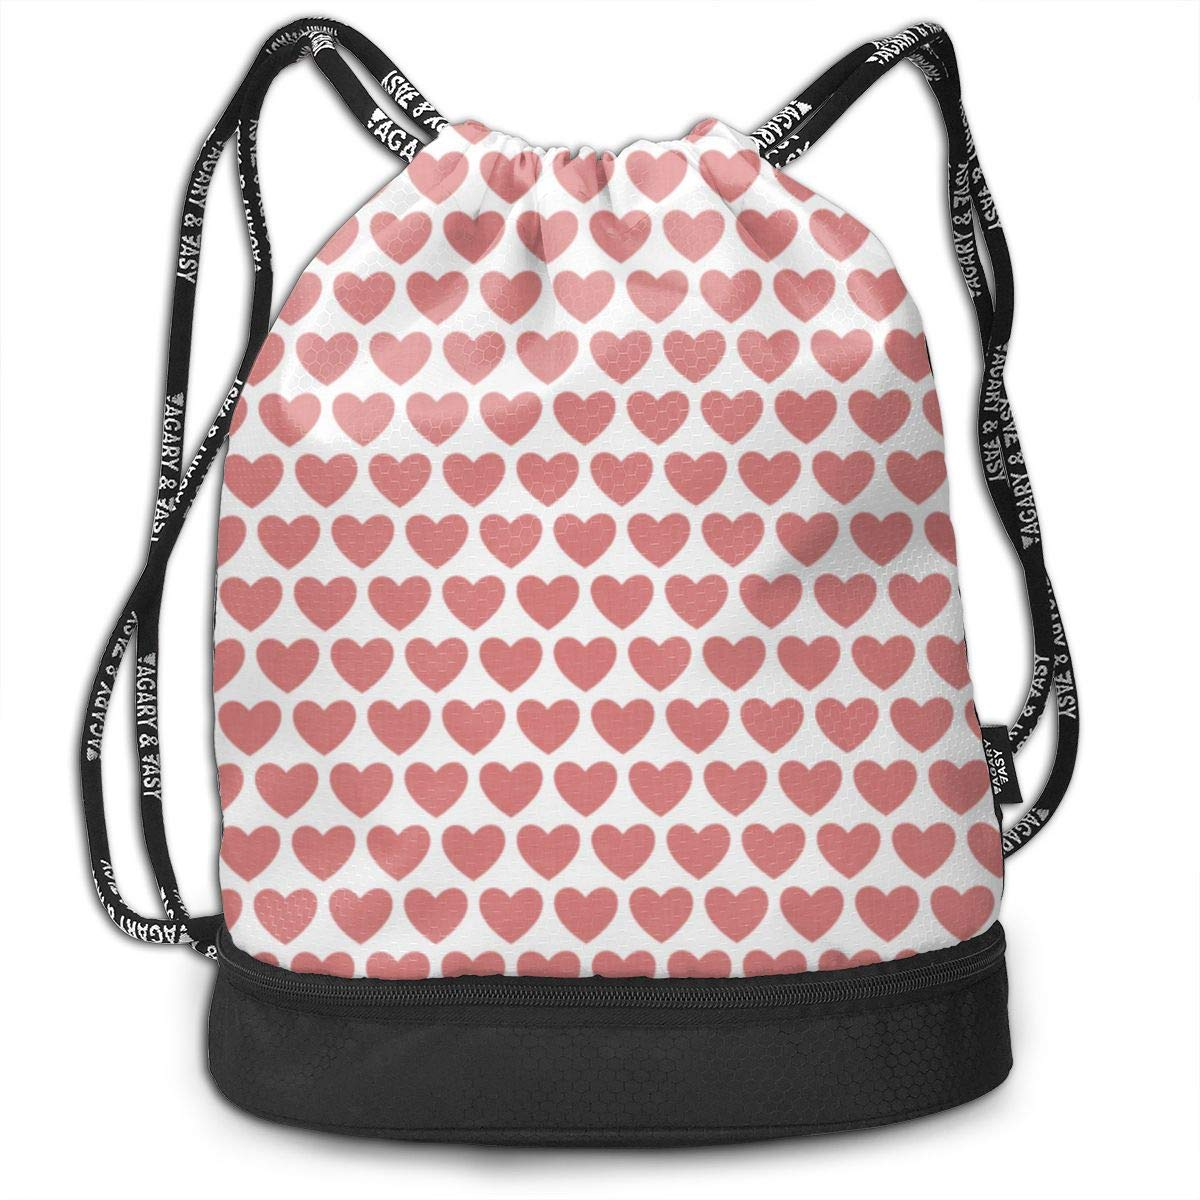 Linen Hearts Red On White Drawstring Backpack Sports Athletic Gym Cinch Sack String Storage Bags for Hiking Travel Beach